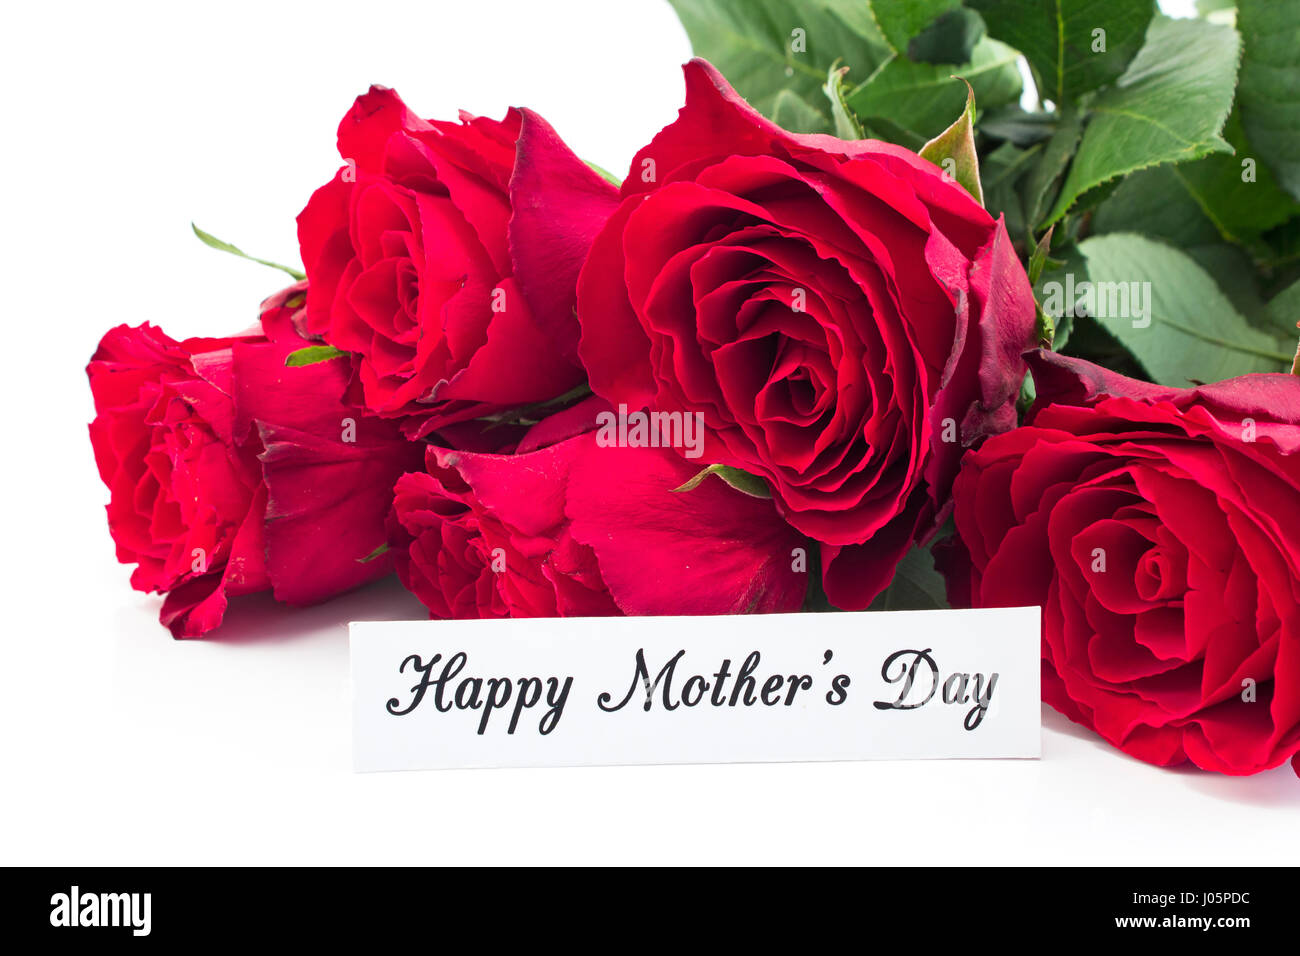 Happy Mothers Day Greeting Card With Bouquet Of Red Roses On